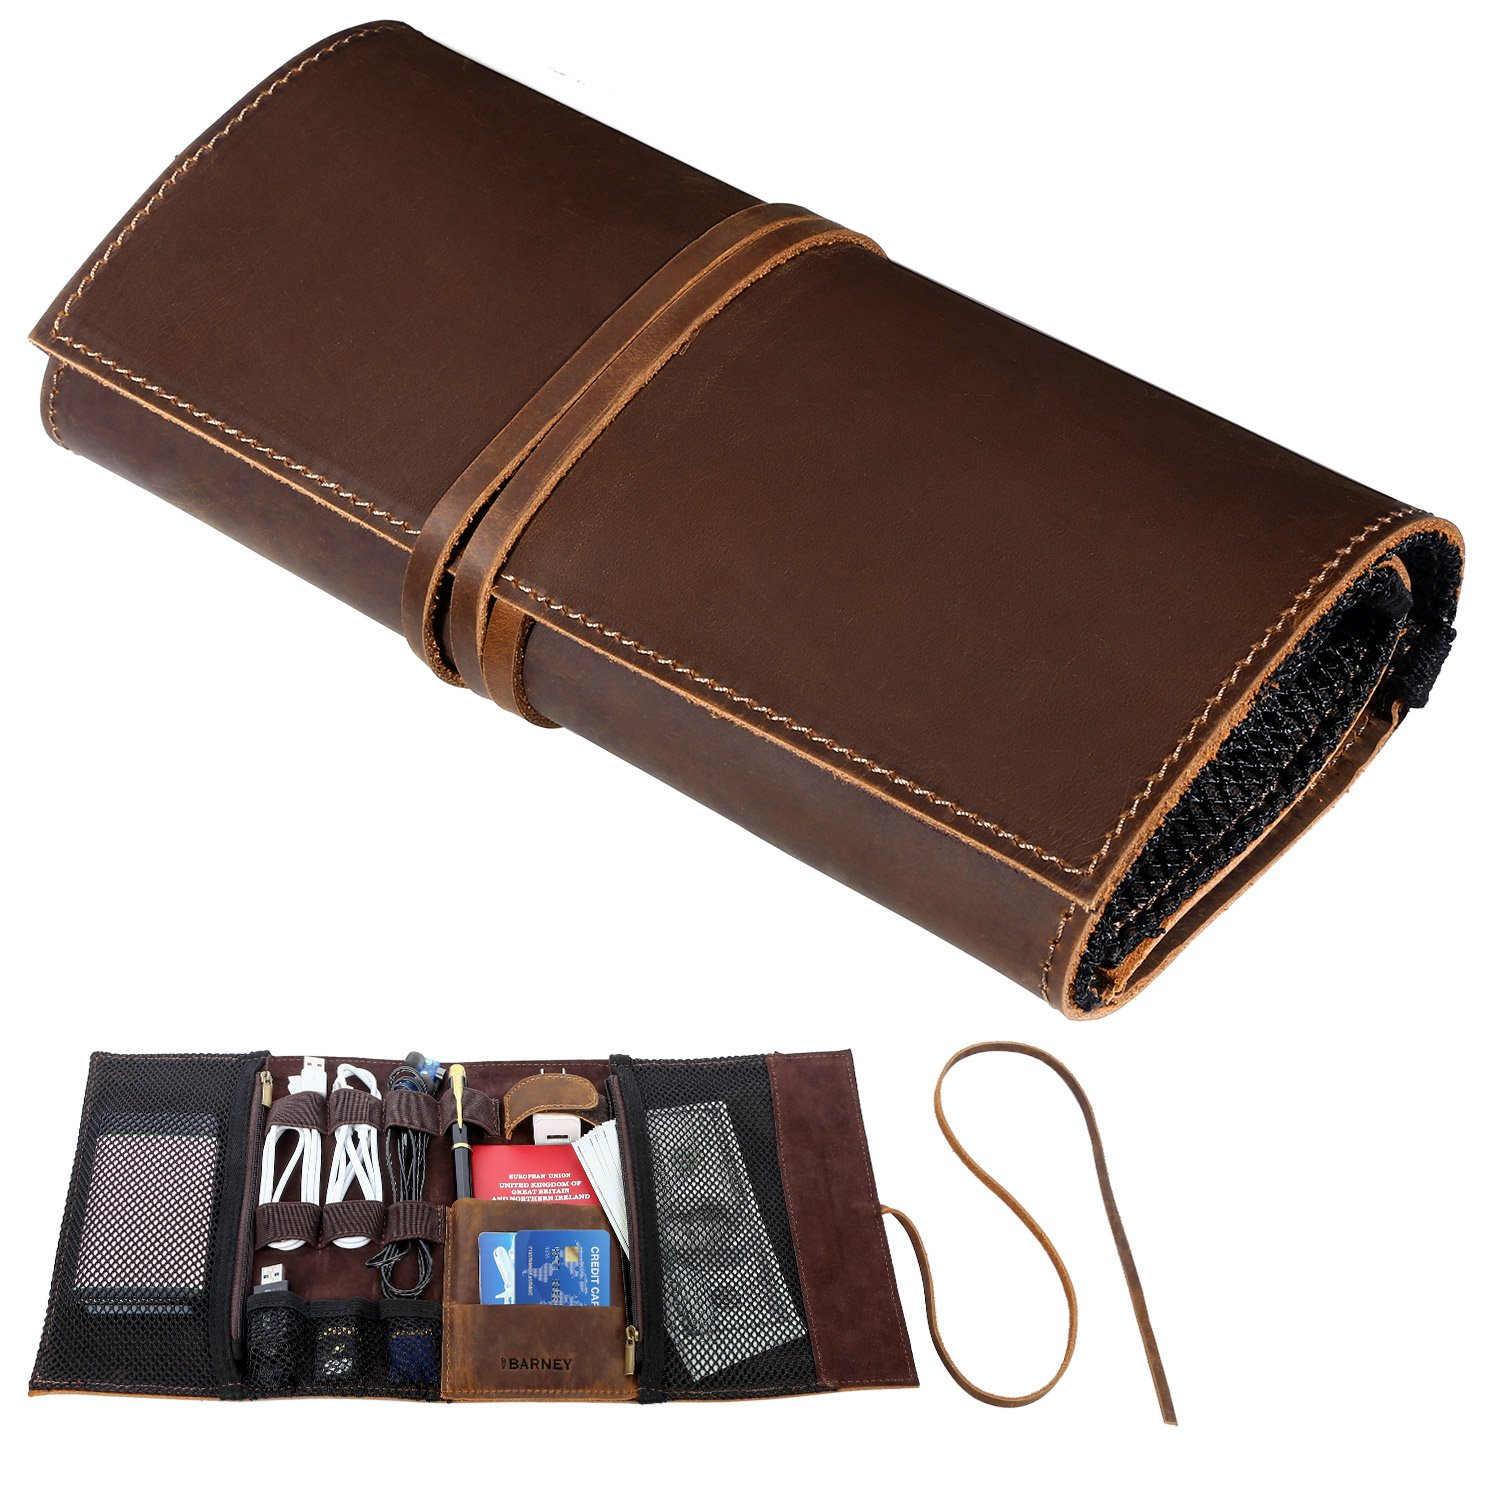 Genuine Crazy Horse Leather Electronics Organizer Roll Bag Travel Pouch for USB Cable, SD Card, Charger, Earphone, Passport, Cash, Coins, Hard Drive by BY BARNEY